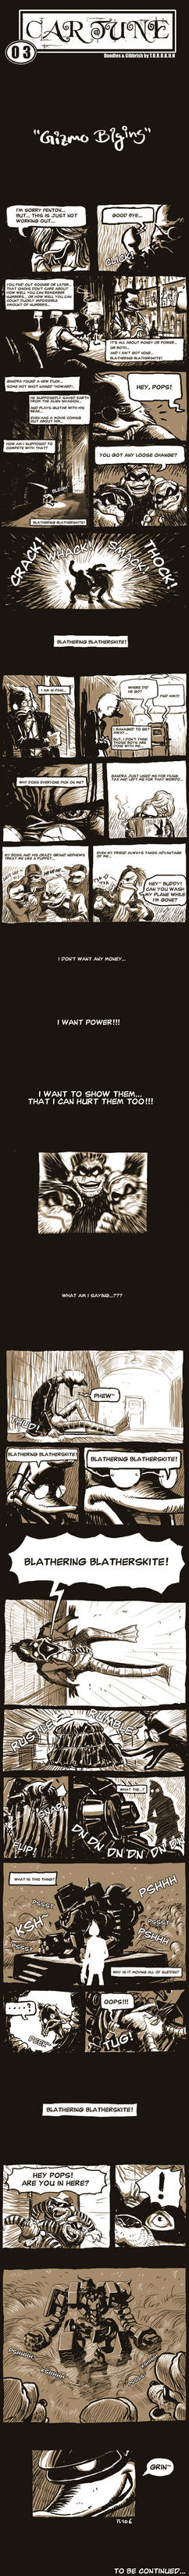 Gizmo Duck Fan Comic by torokun